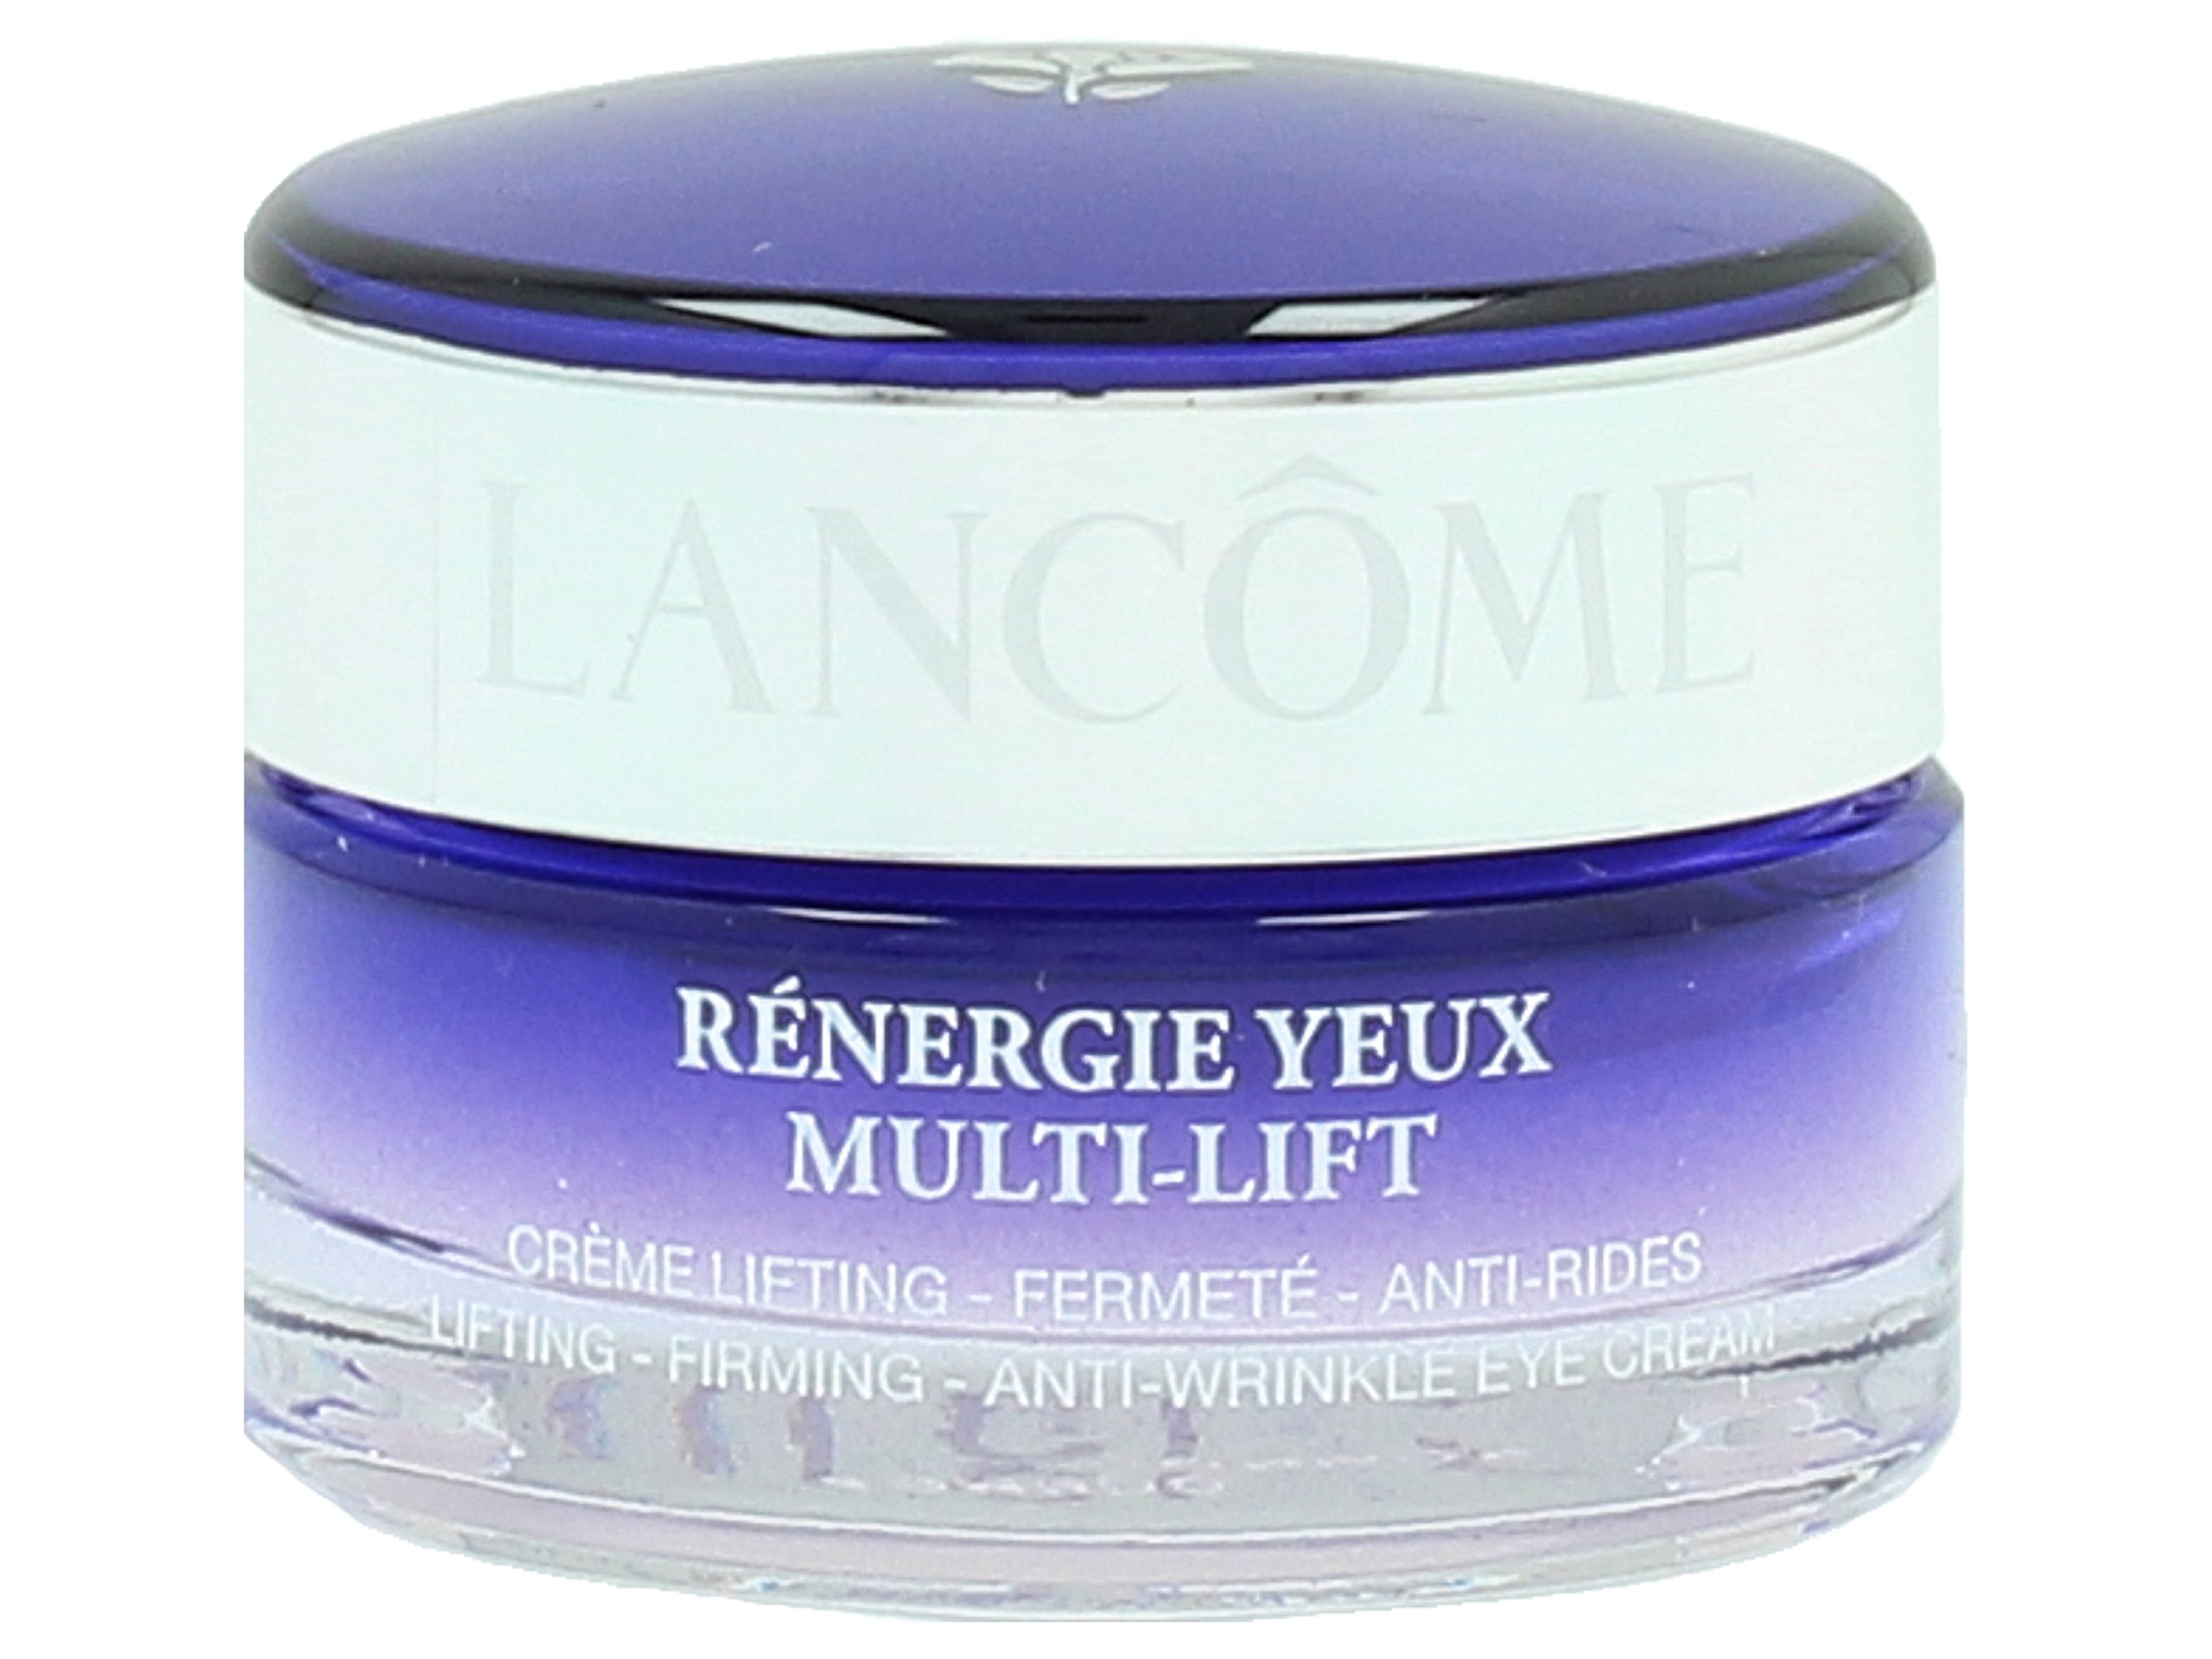 Lancome Renergie Yeux Multi-Lift Lifting Firming Anti-Wrinkle Eye Cream, 0.51 Ounce